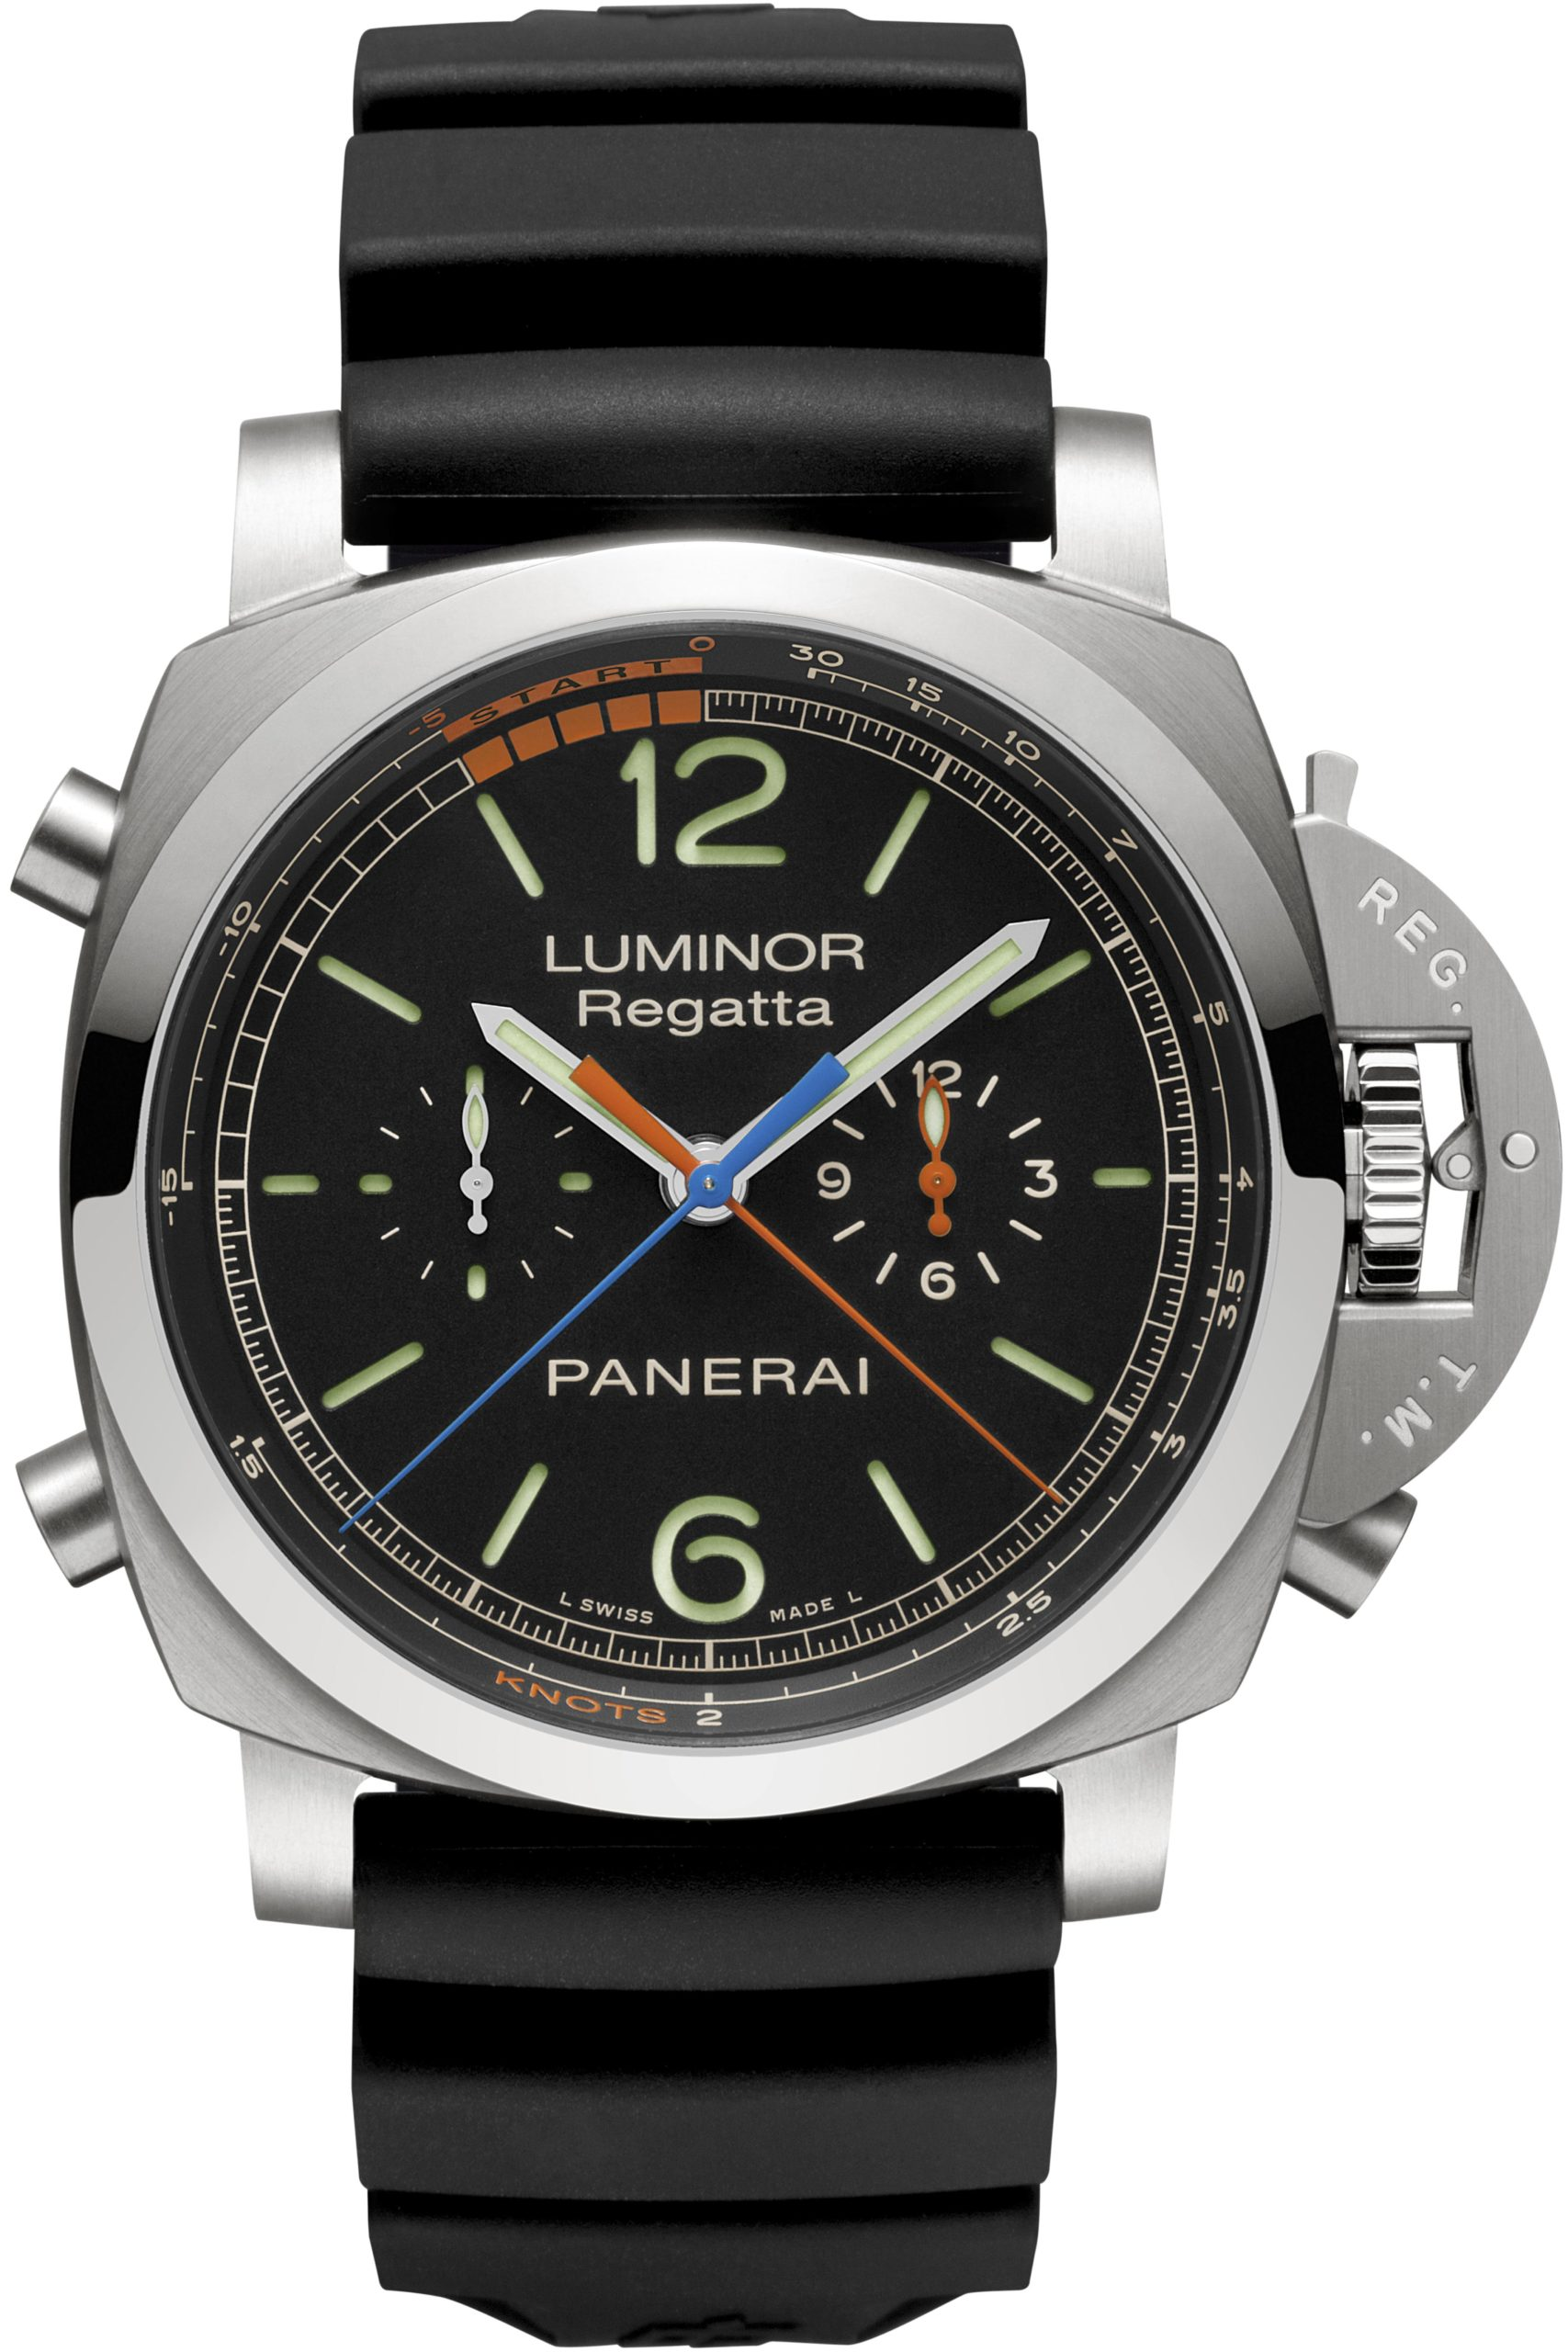 LUMINOR REGATTA 3 DAYS CHRONO FLYBACK